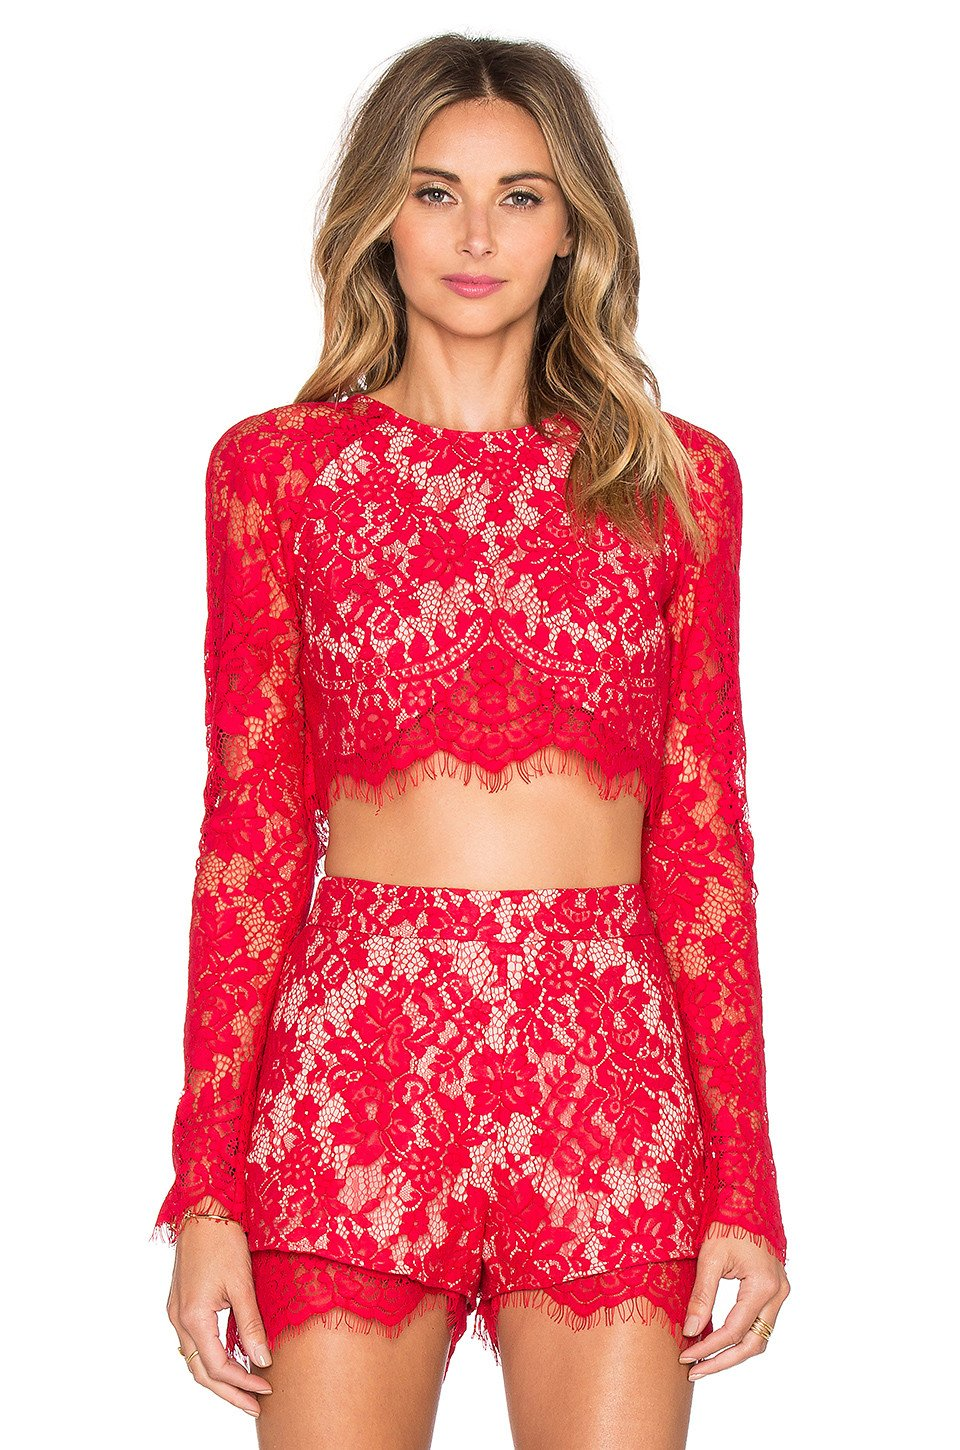 Piazza Crop Top - Kustom Label - 1